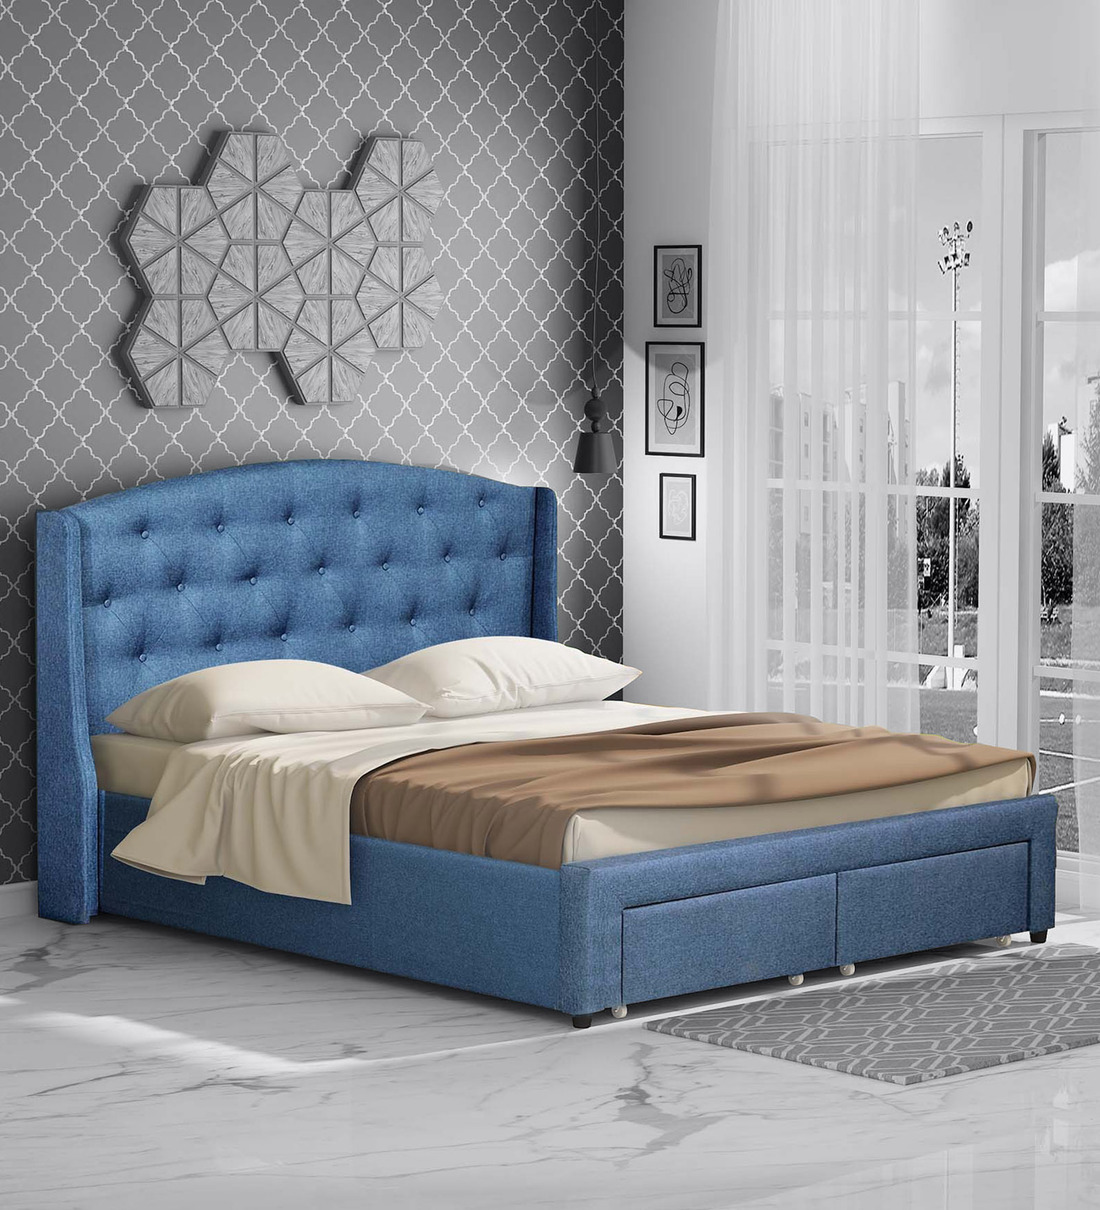 Buy Danilo Upholstered King Size Bed In Navy Blue Colour With Storage Drawers By Casacraft Online King Size Upholstered Beds Beds Furniture Pepperfry Product